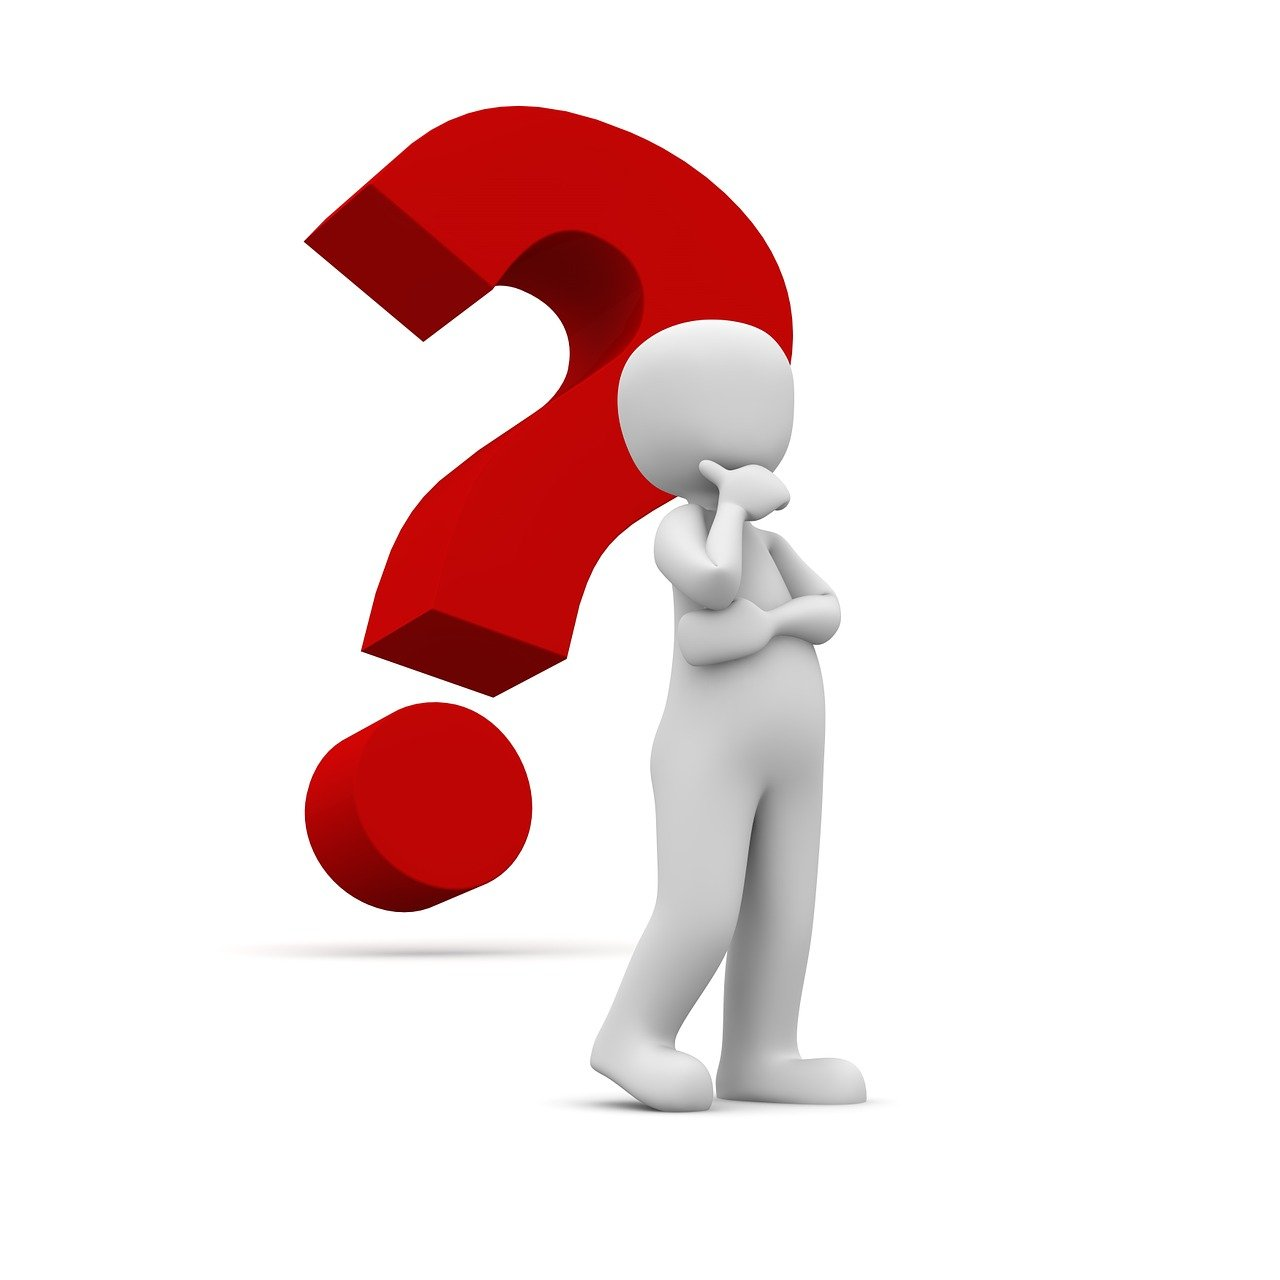 Question Mark Response - Free image on Pixabay